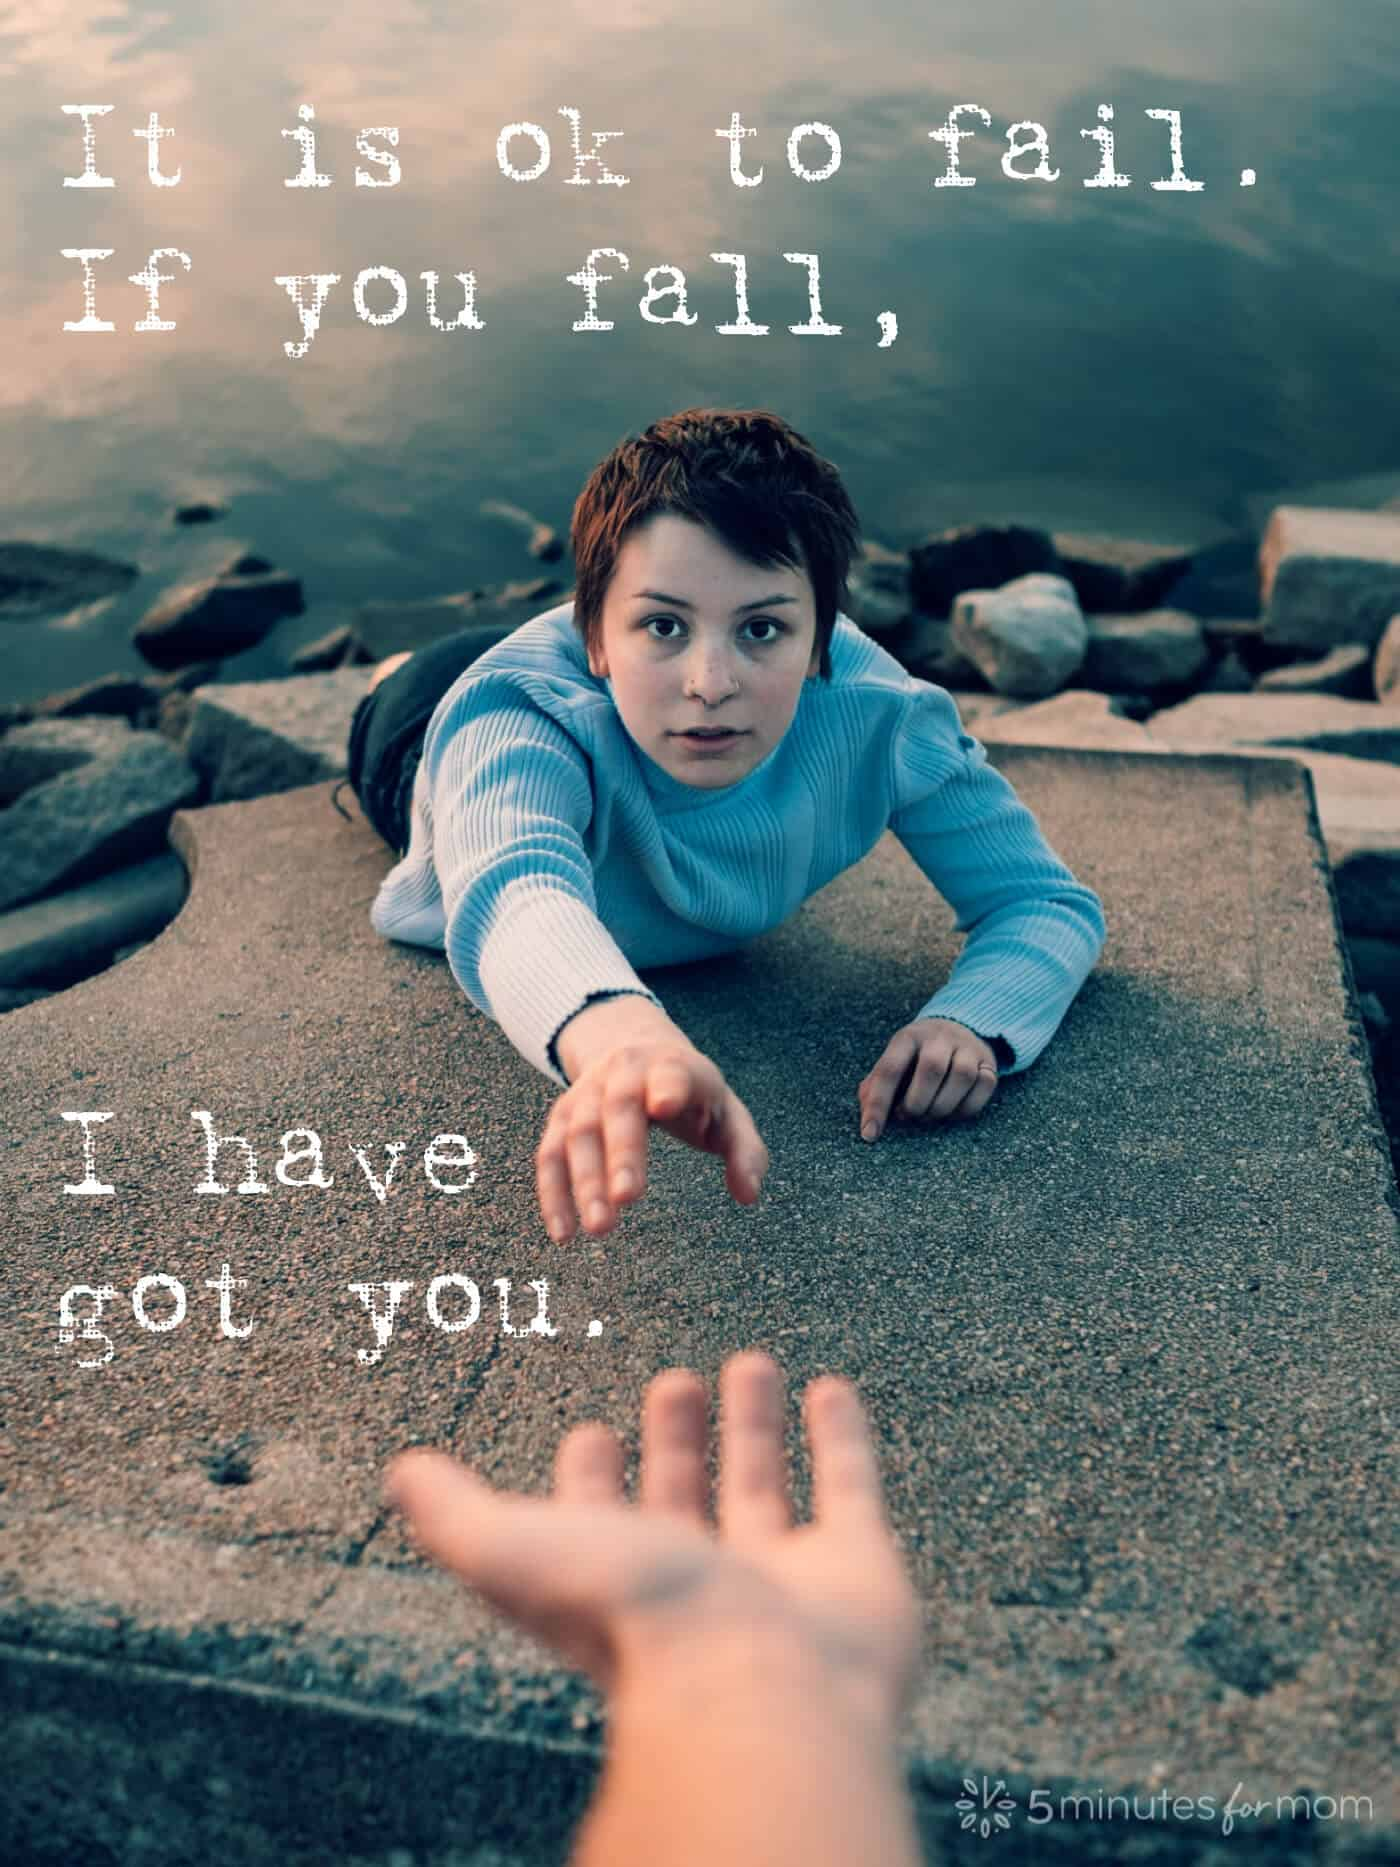 The Myth of Independence - It is okay to fail. If you fall I have got you.